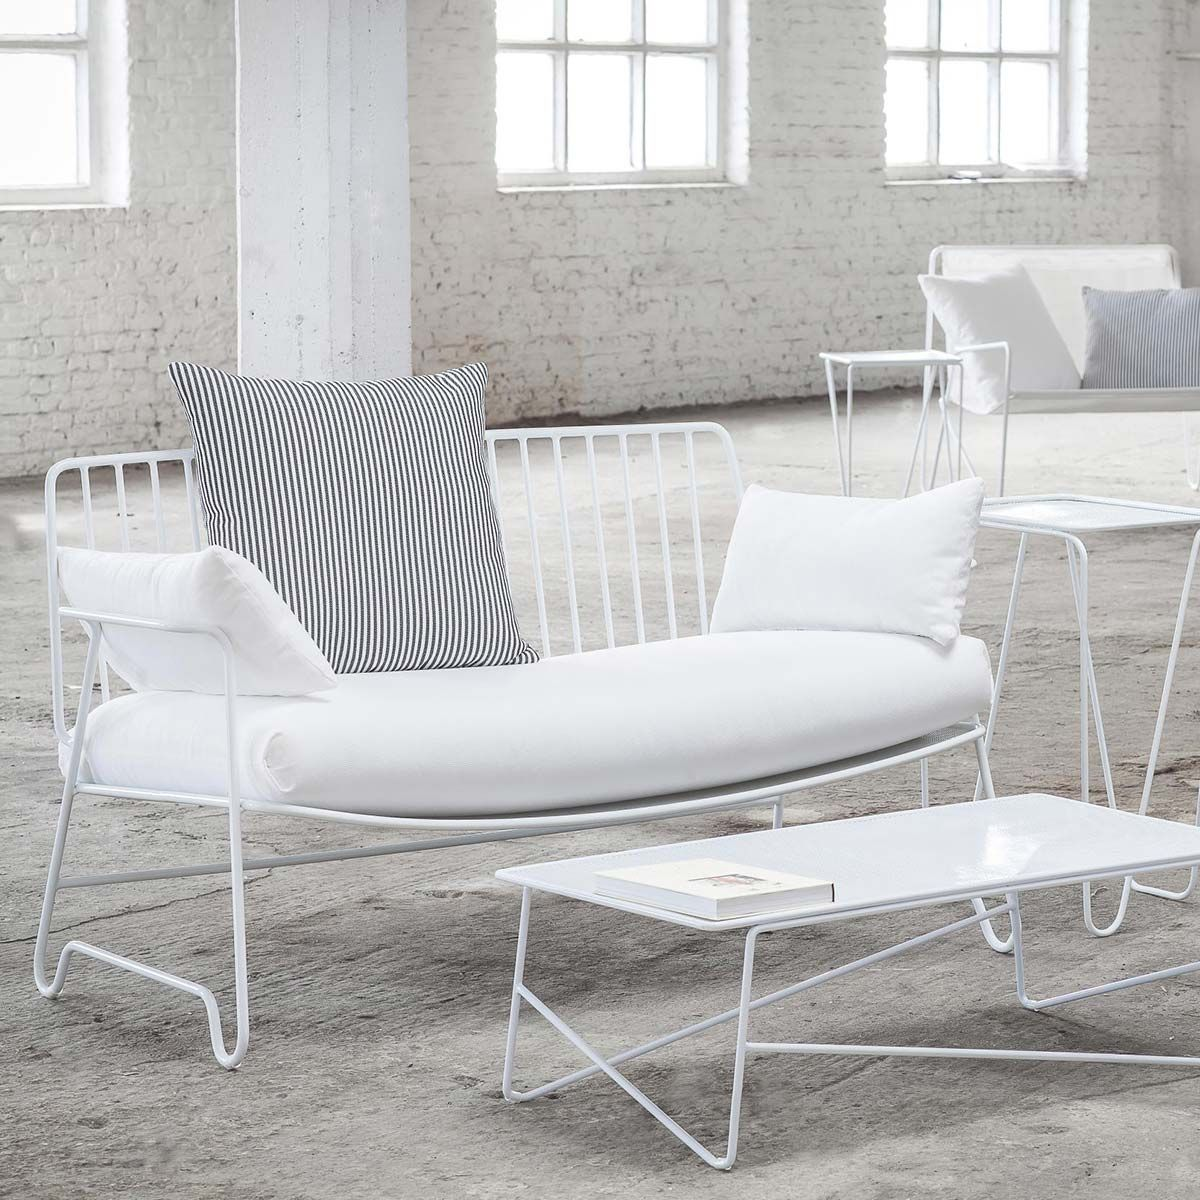 banc de jardin en aluminium blanc fish fish paola navone serax decoclico. Black Bedroom Furniture Sets. Home Design Ideas